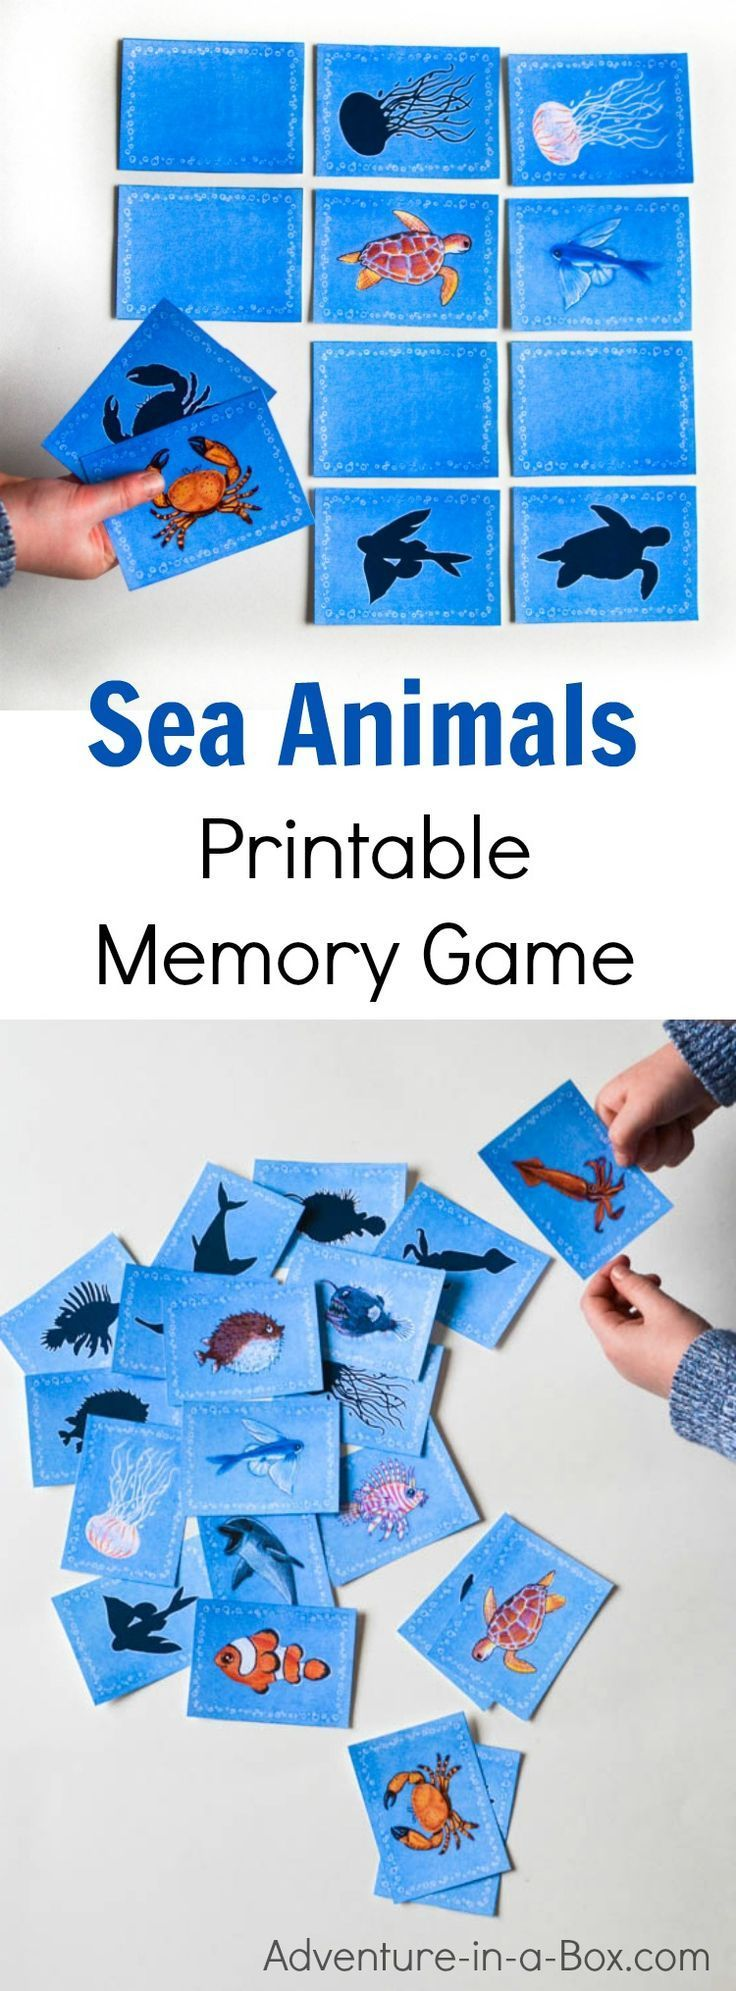 Sea Animals Printable Memory Game For Kids A Fun Matching